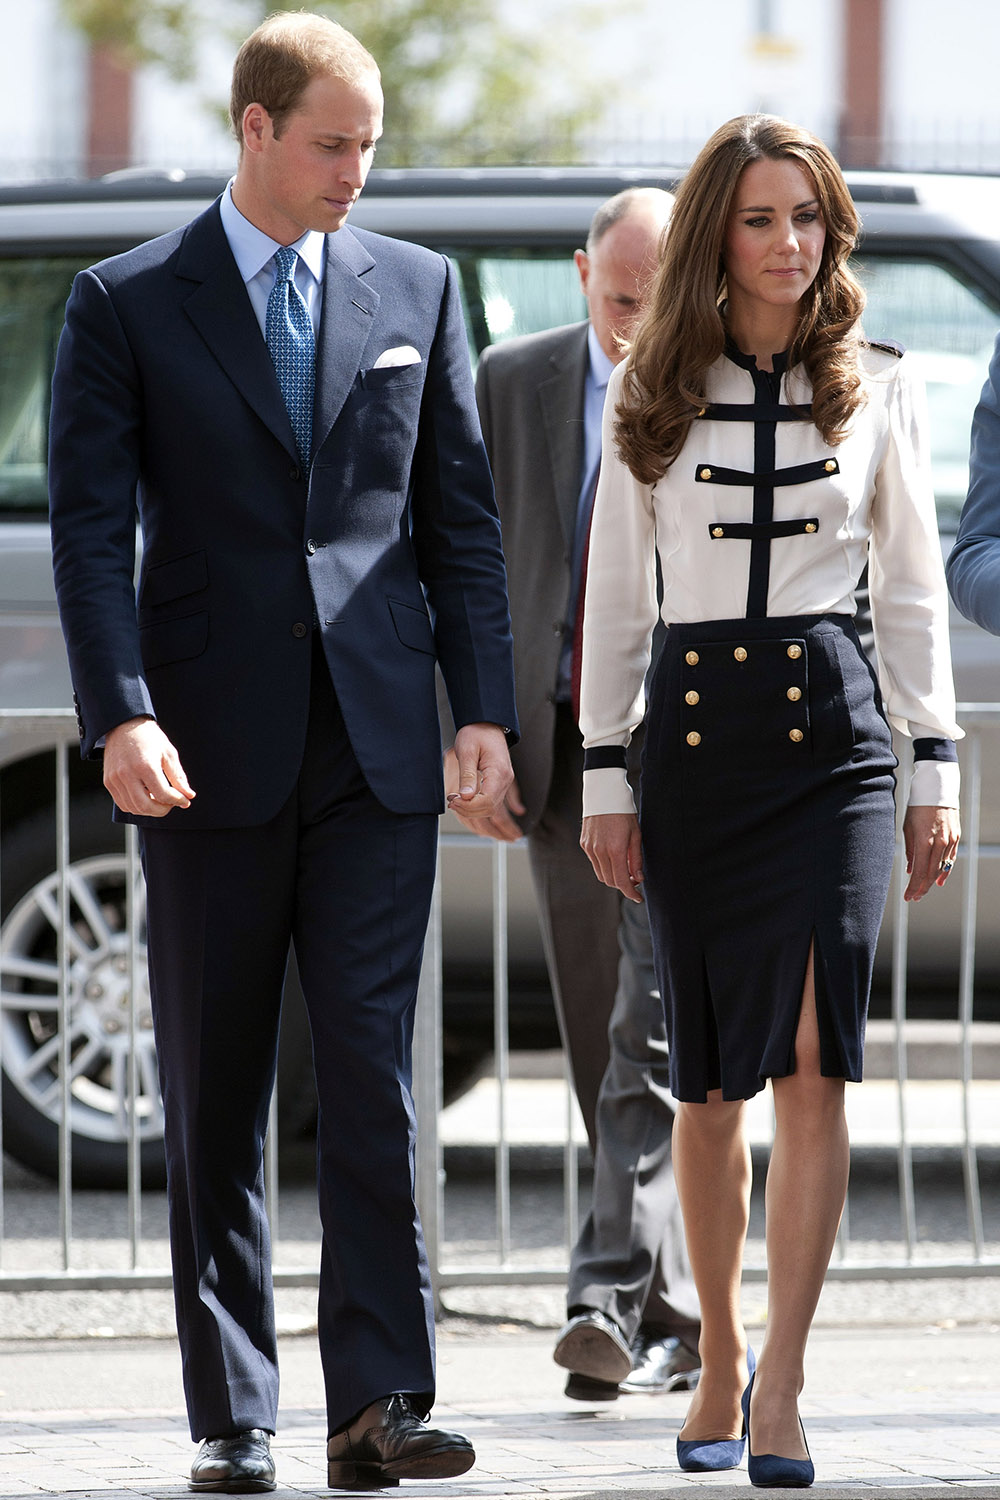 kate middleton wardrobe recycler here s all the times the duchess wore the same dress twice https www marieclaire co uk news fashion news kate middleton wardrobe recycler here s all the times the duchess wore the same dress twice 10931